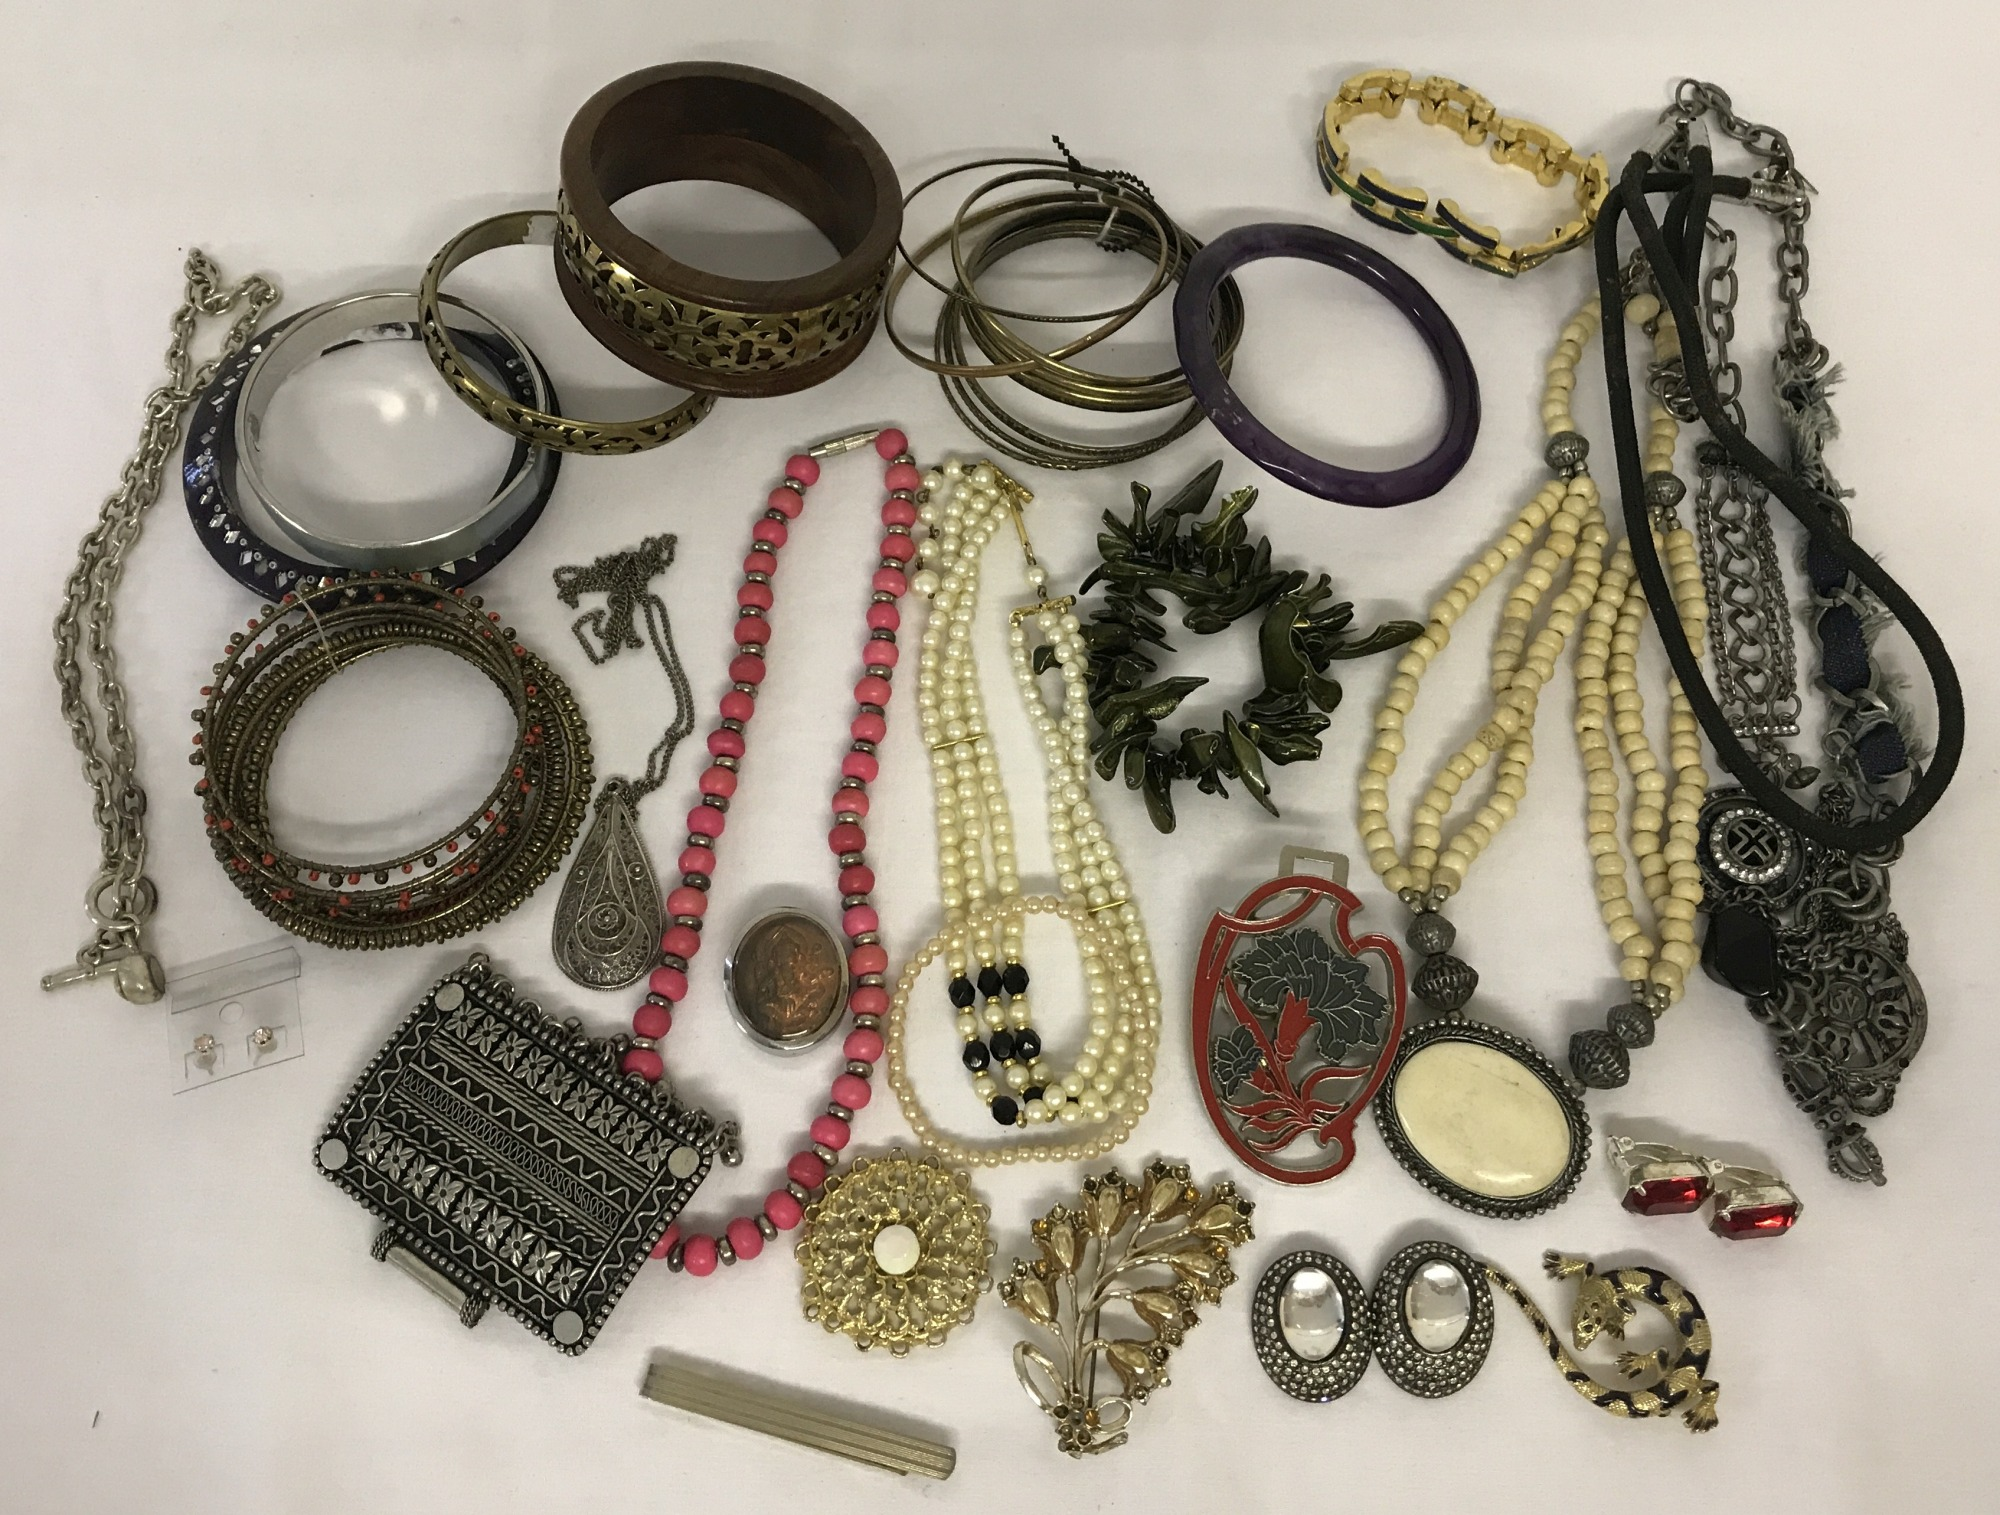 Lot 17 - A collection of vintage and modern costume jewellery bracelets, necklaces and brooches.